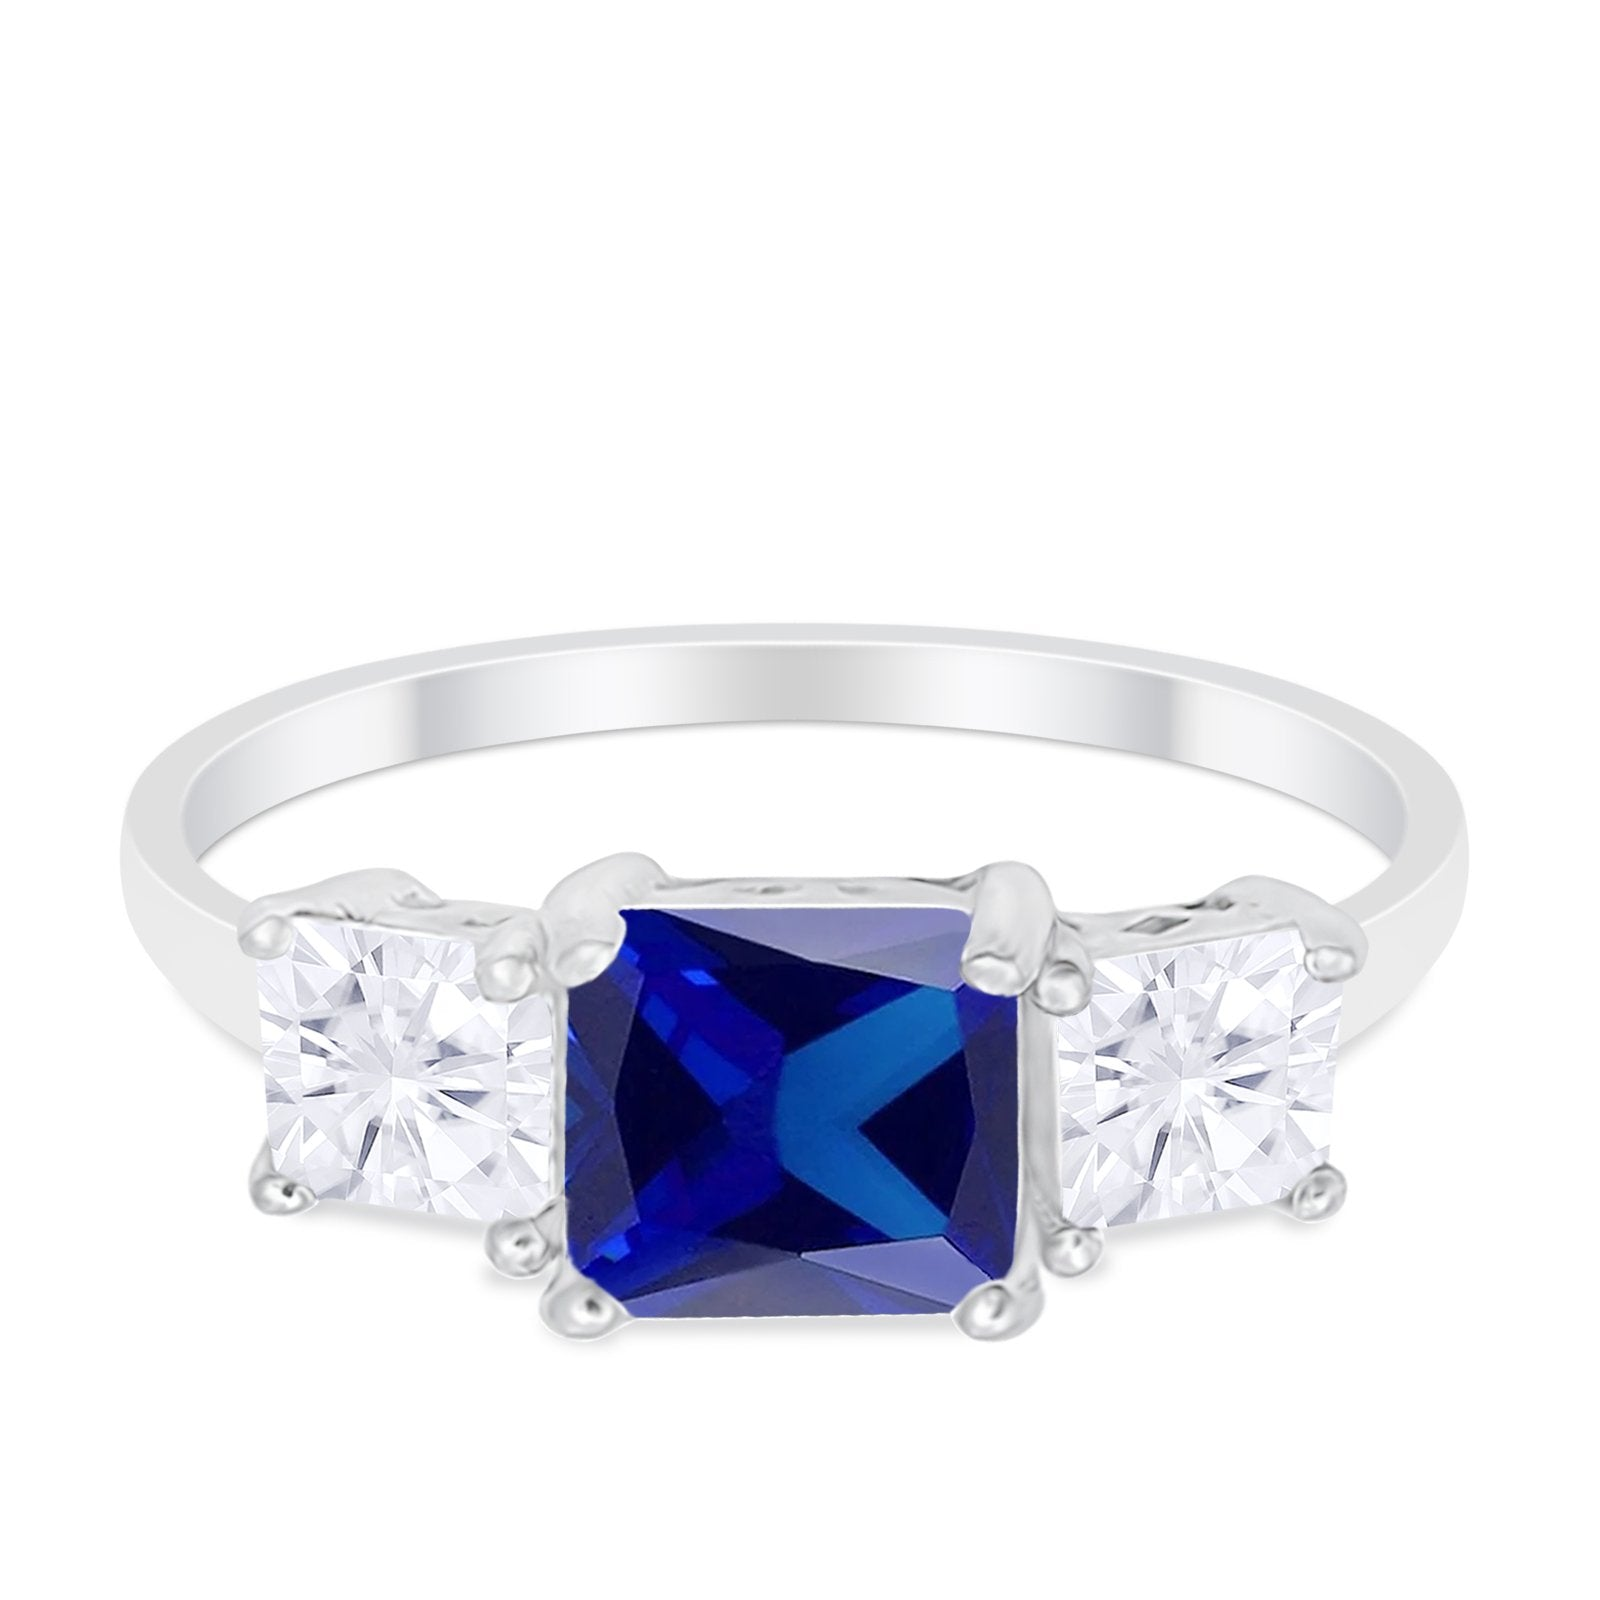 3 Stone Engagement Ring Princess Cut Simulated Sapphire CZ 925 Sterling Silver